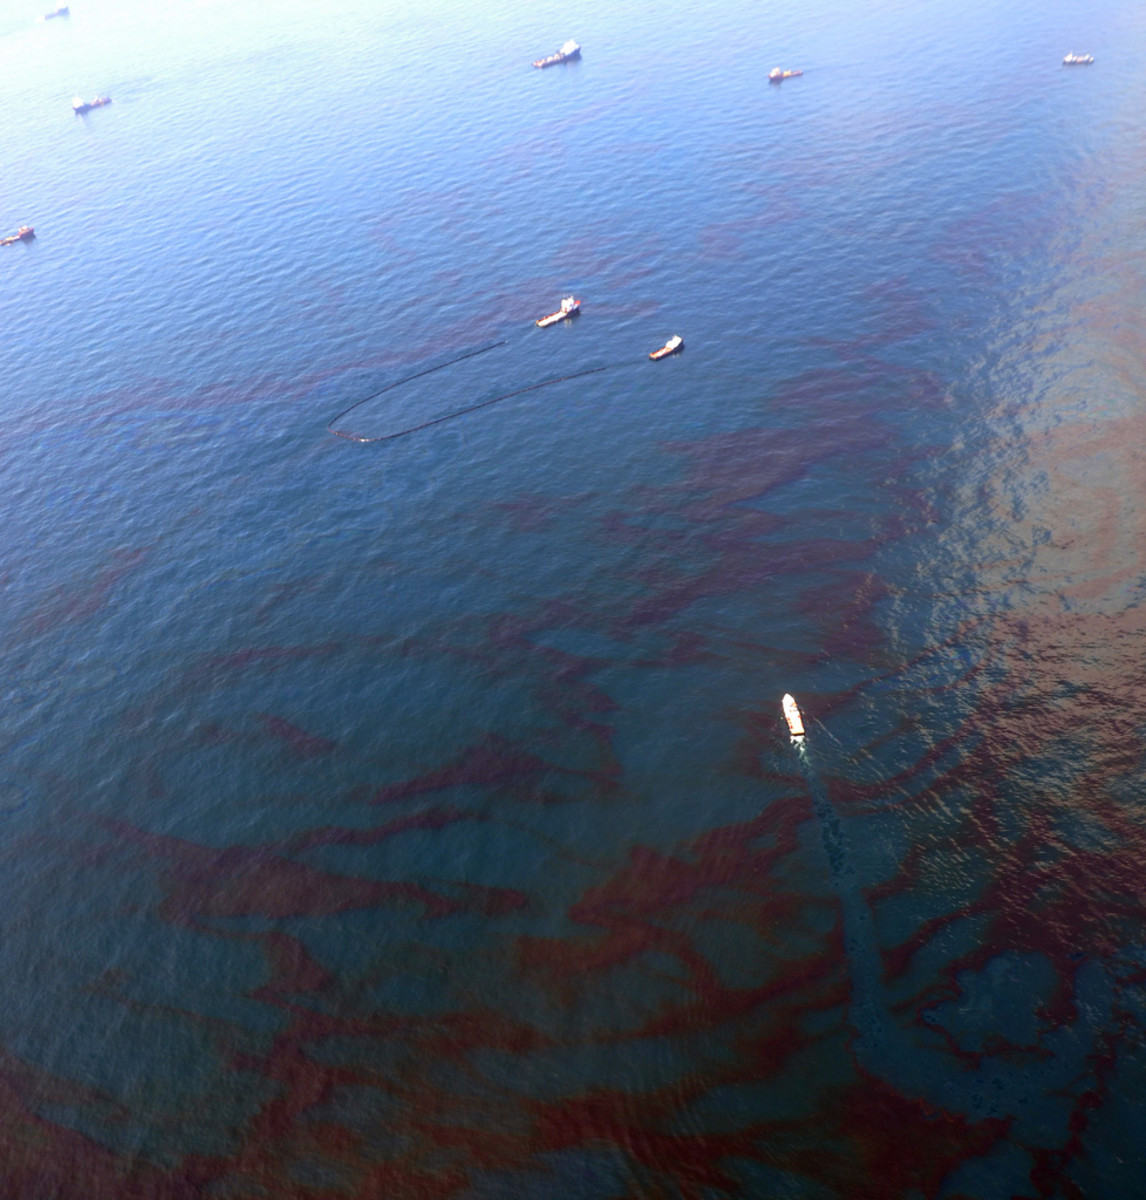 The BP (Deepwater Horizon) oil spill in the Gulf of Mexico caused widespread damage to the Gulf's ecology, tourism, and the death of 11 people.